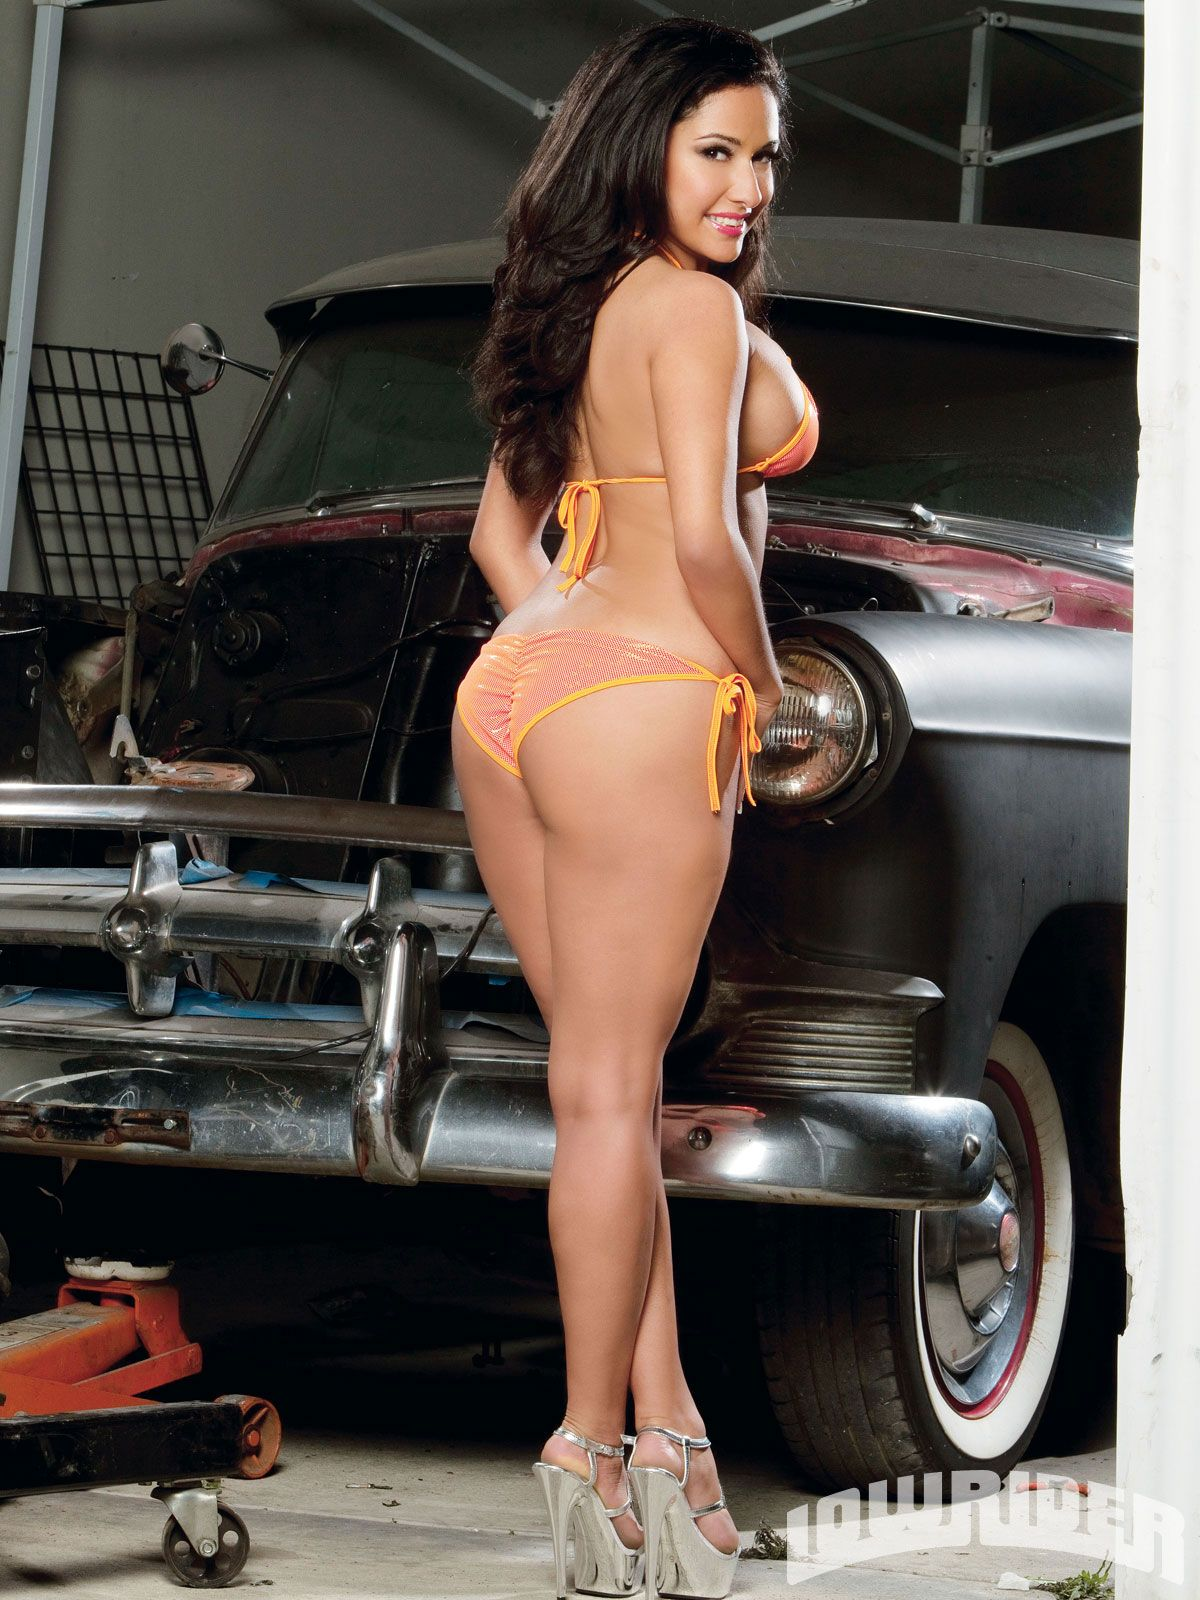 Girls beerfest lowrider models who are in porn young